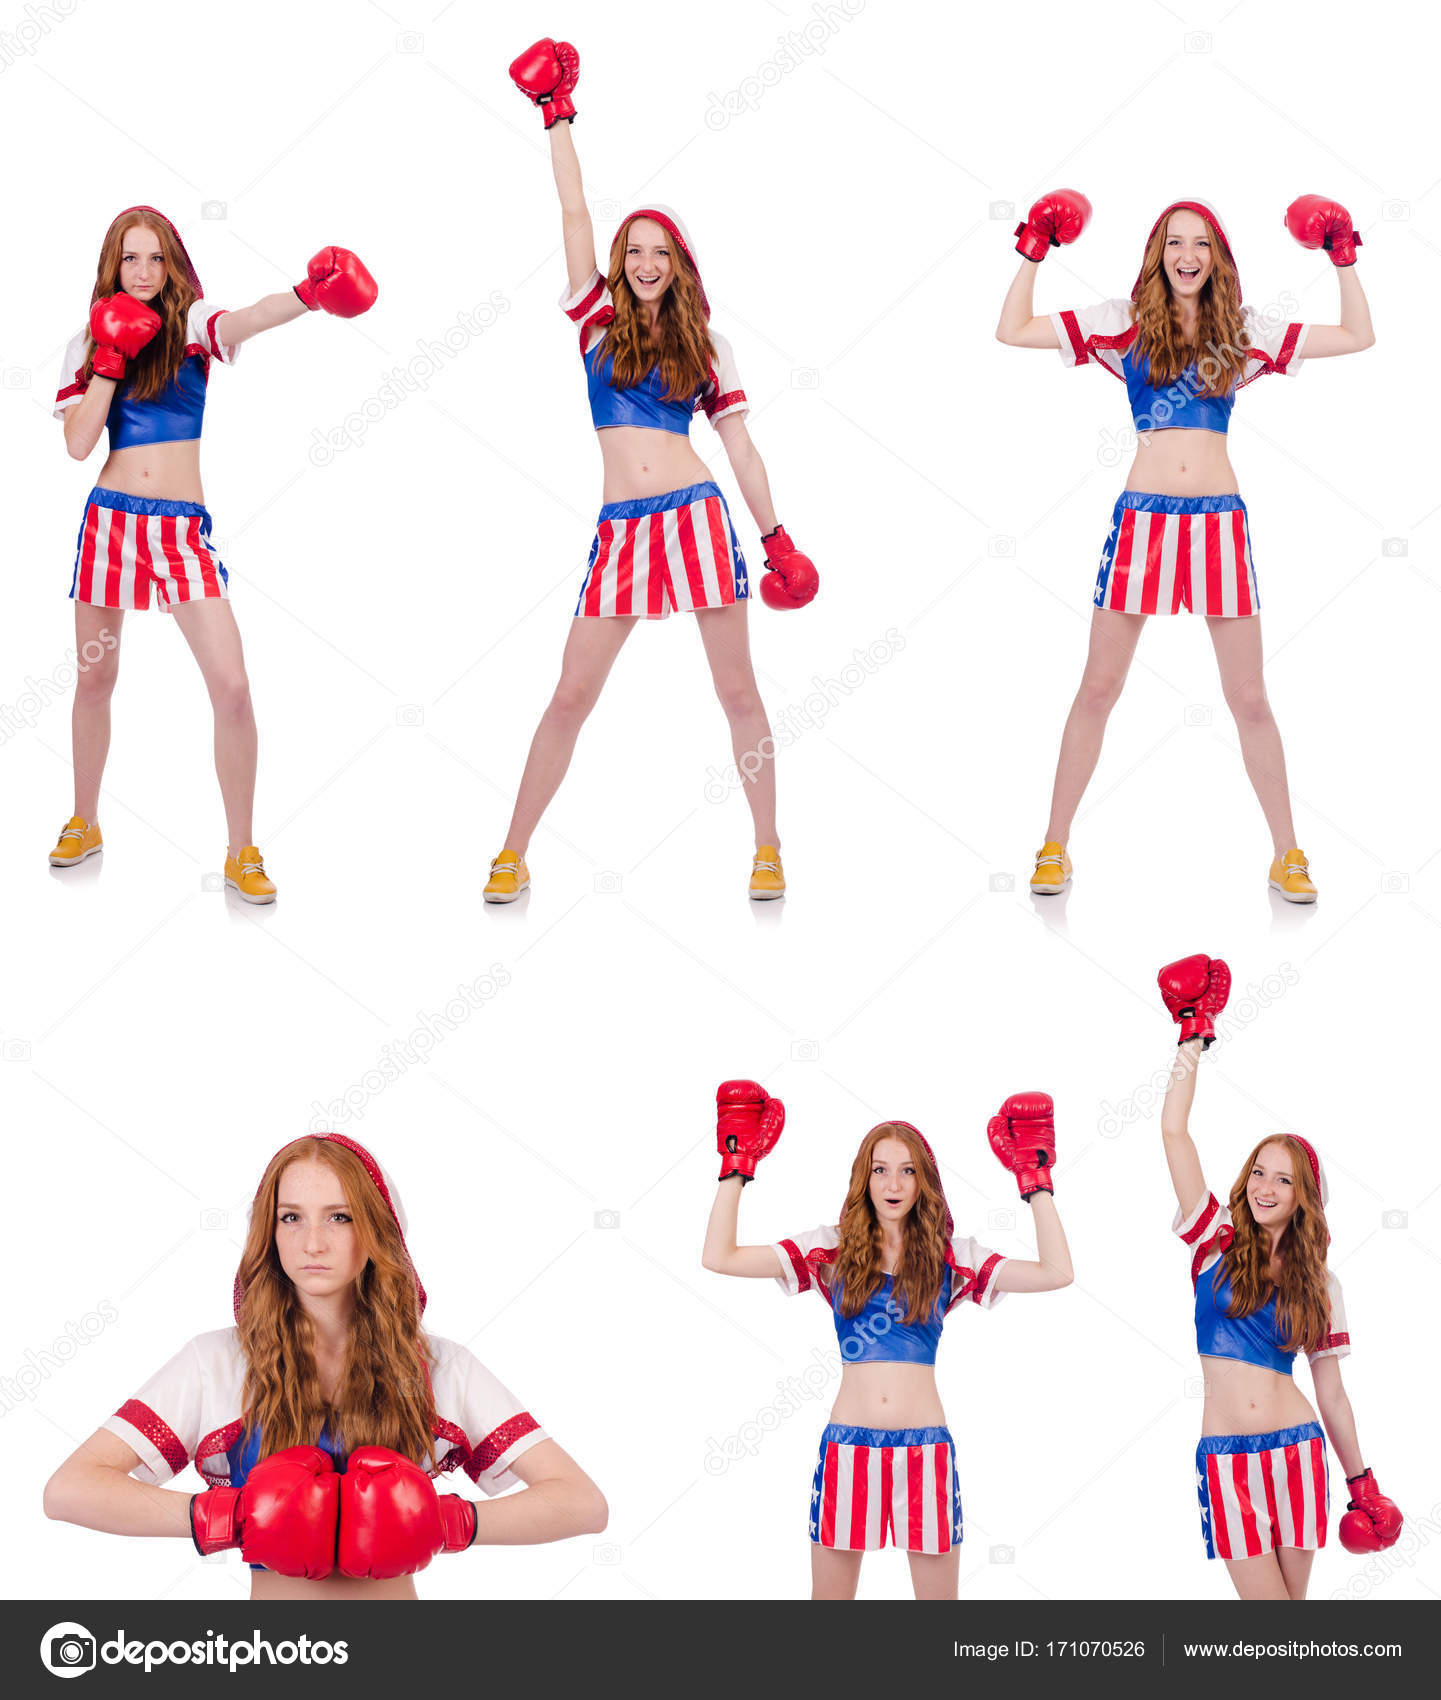 Woman Boxer In Uniform With Us Symbols Stock Photo Elnur 171070526